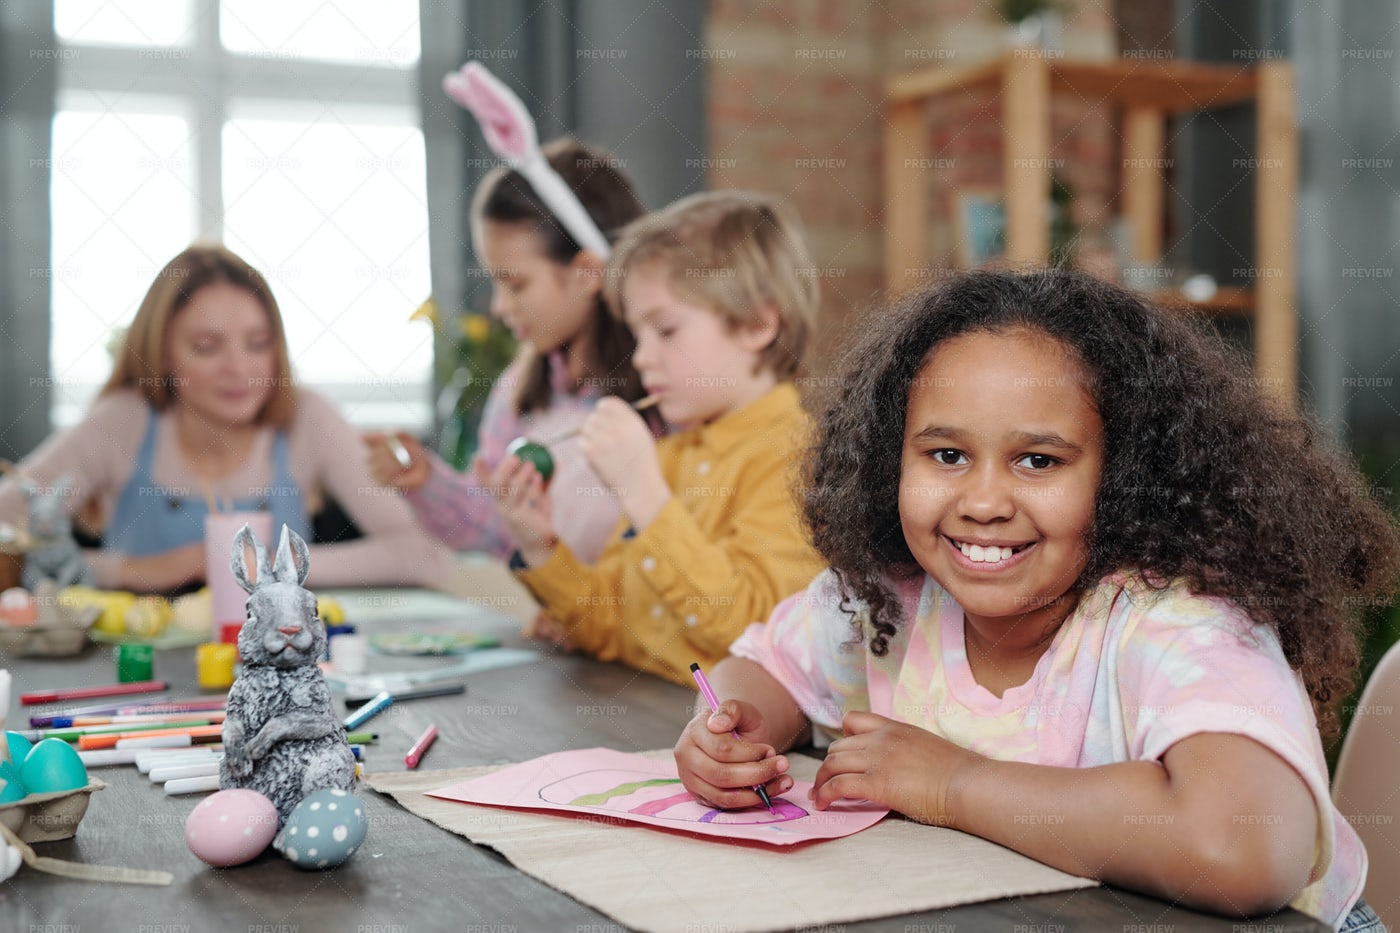 Kids Preparing For Easter Holiday: Stock Photos